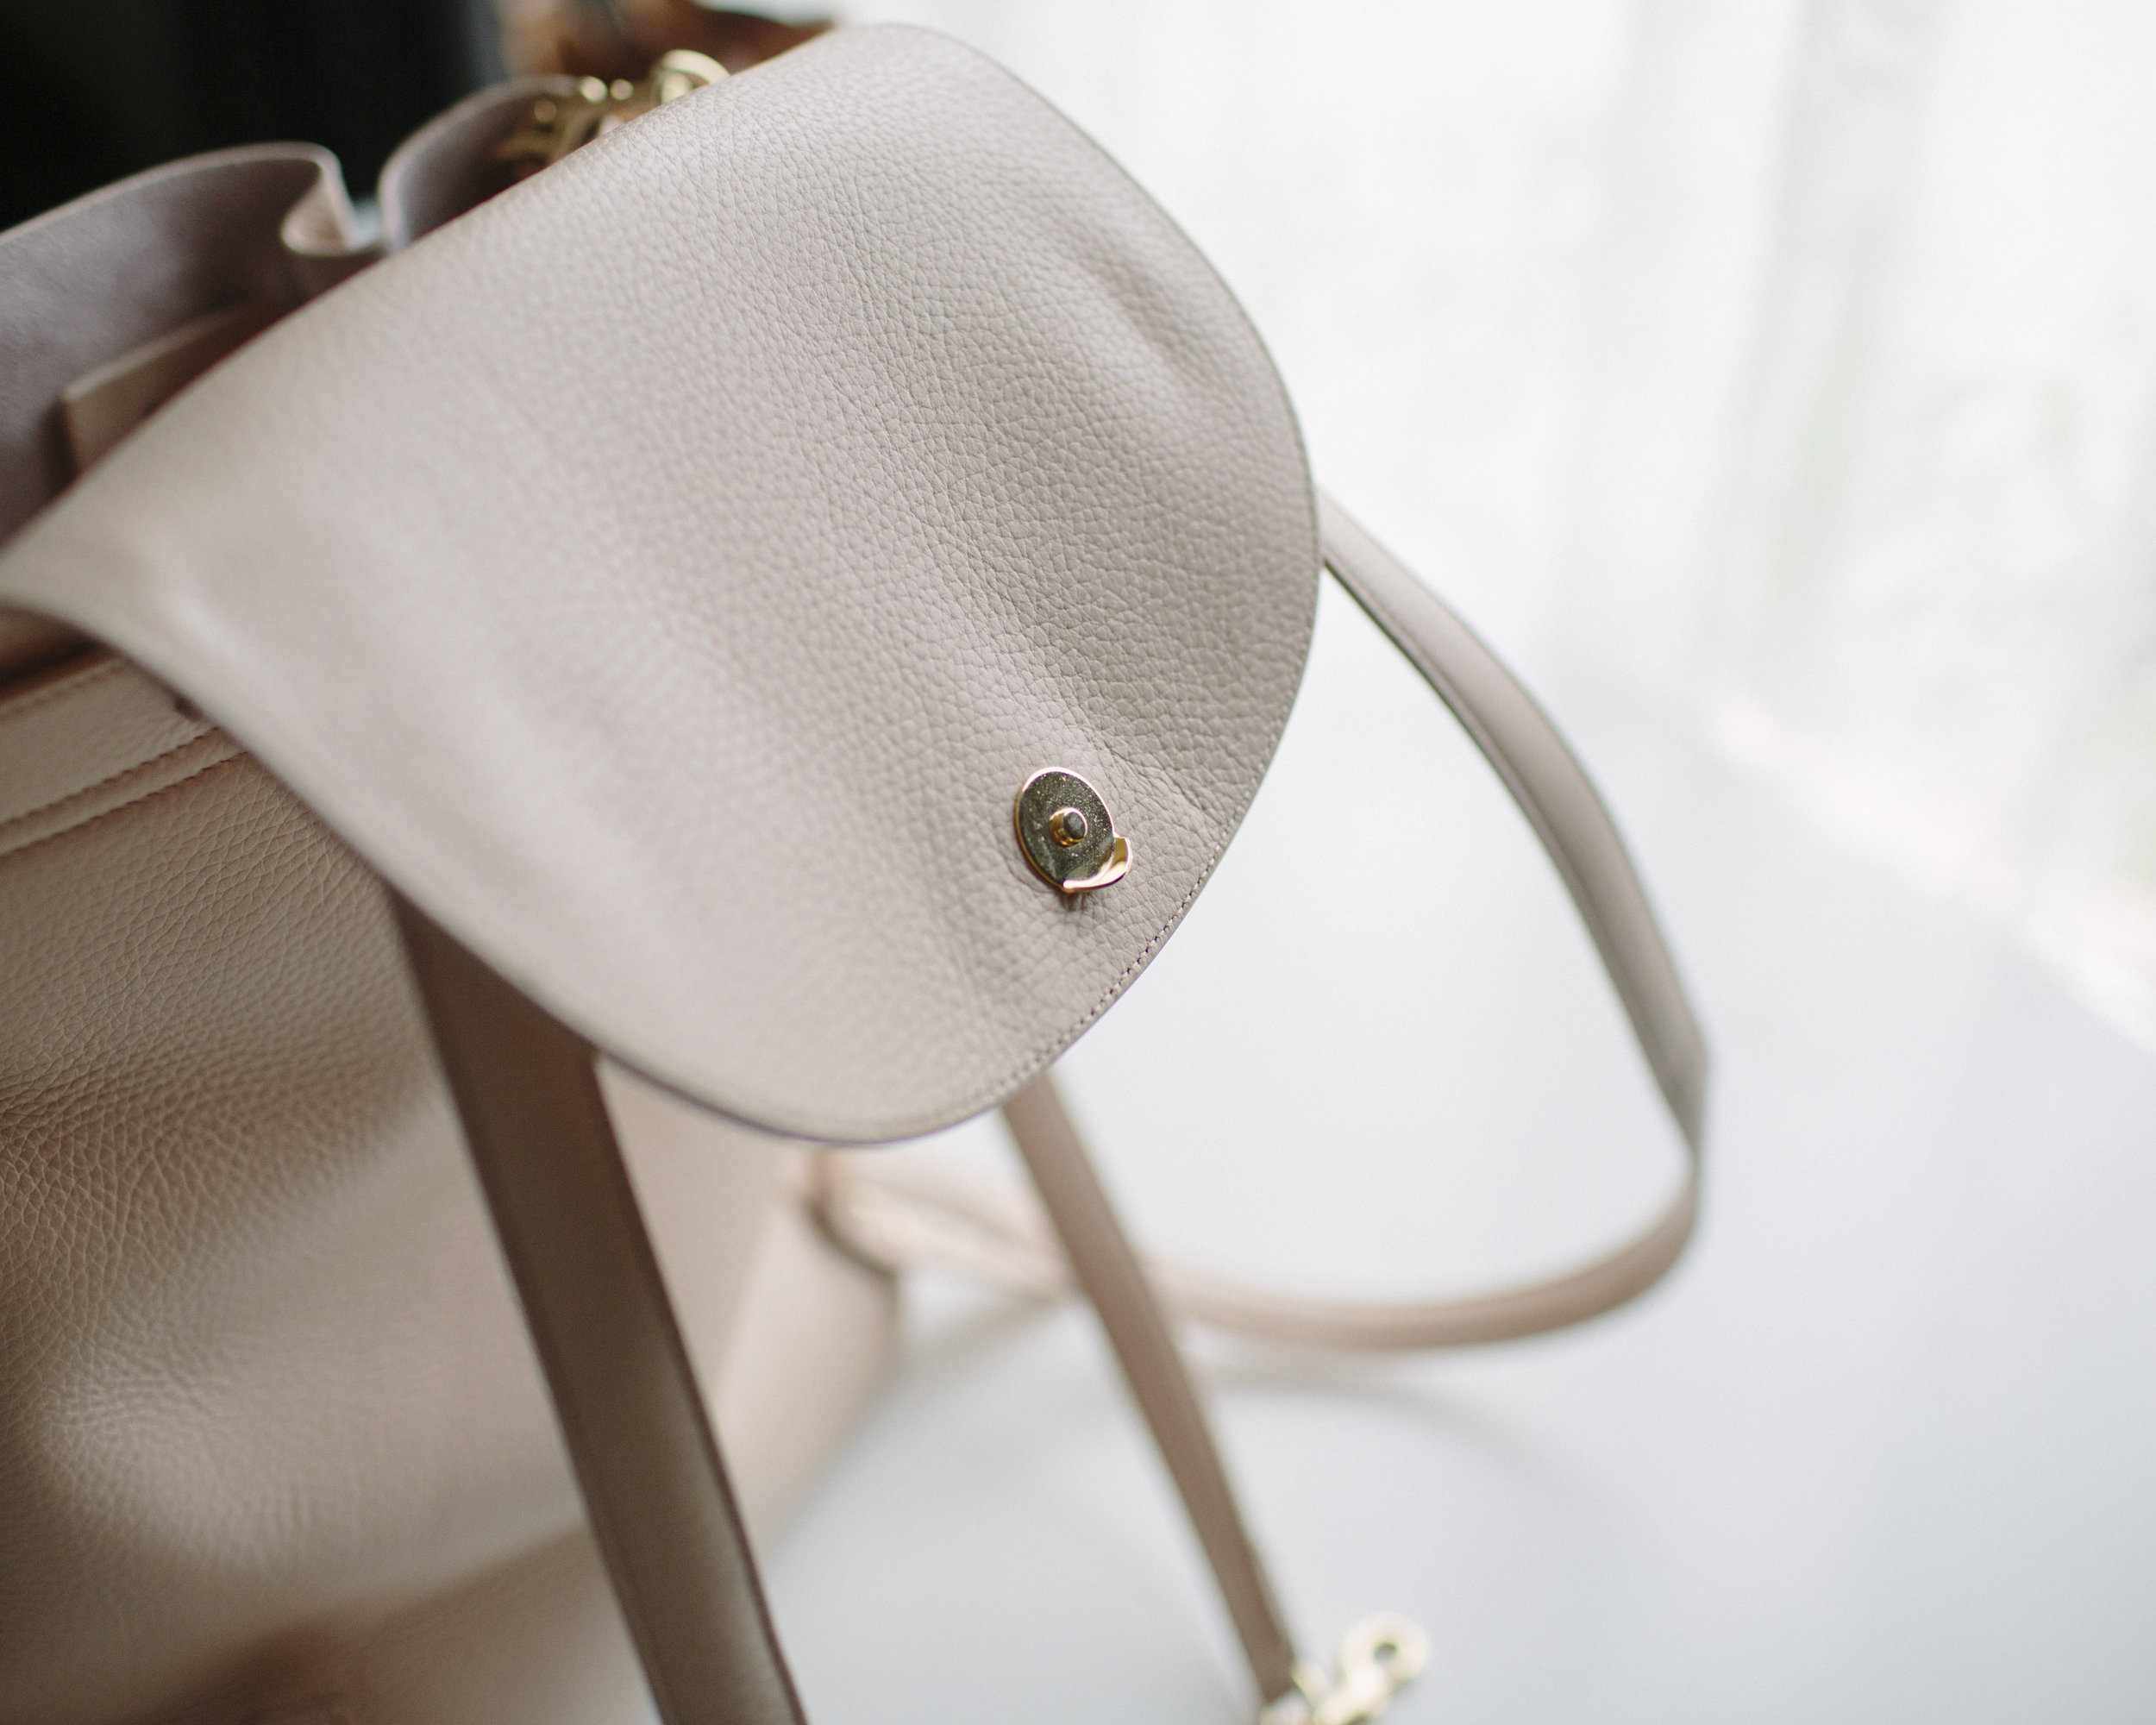 The lip on the closing clasp helps the bag stay closed better.